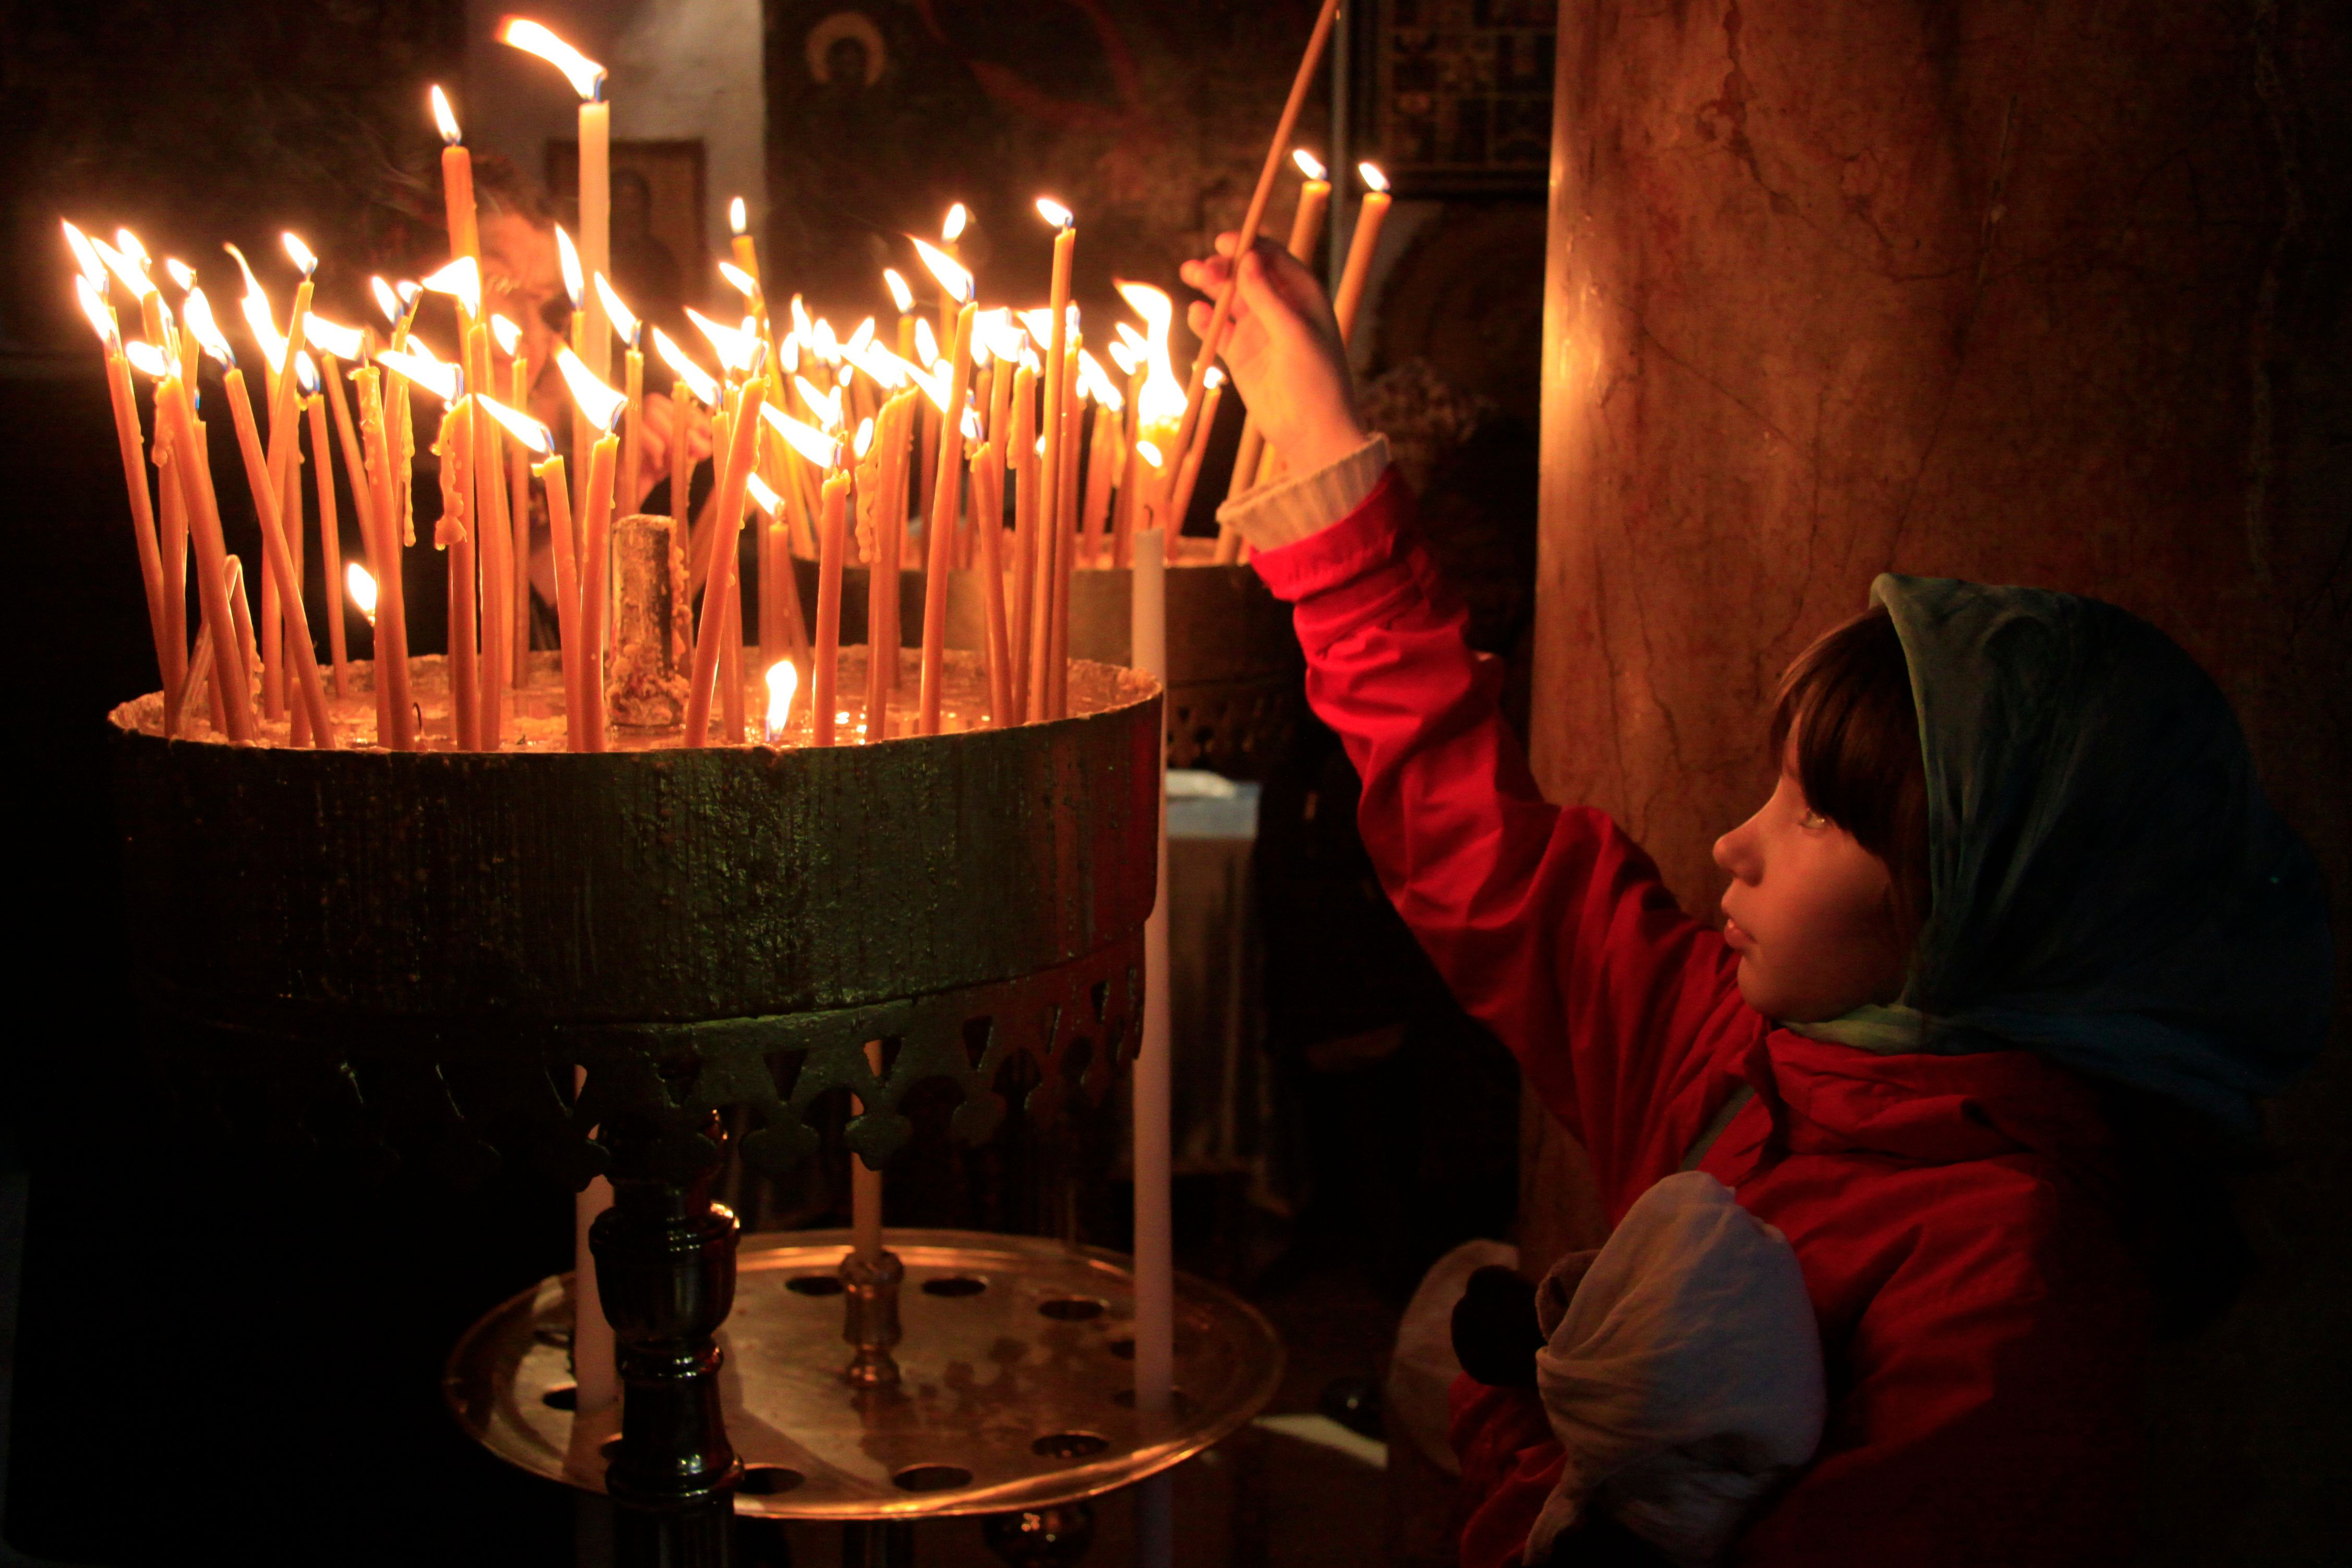 Bethlehem, a young pilgrim at the Church of the Nativity